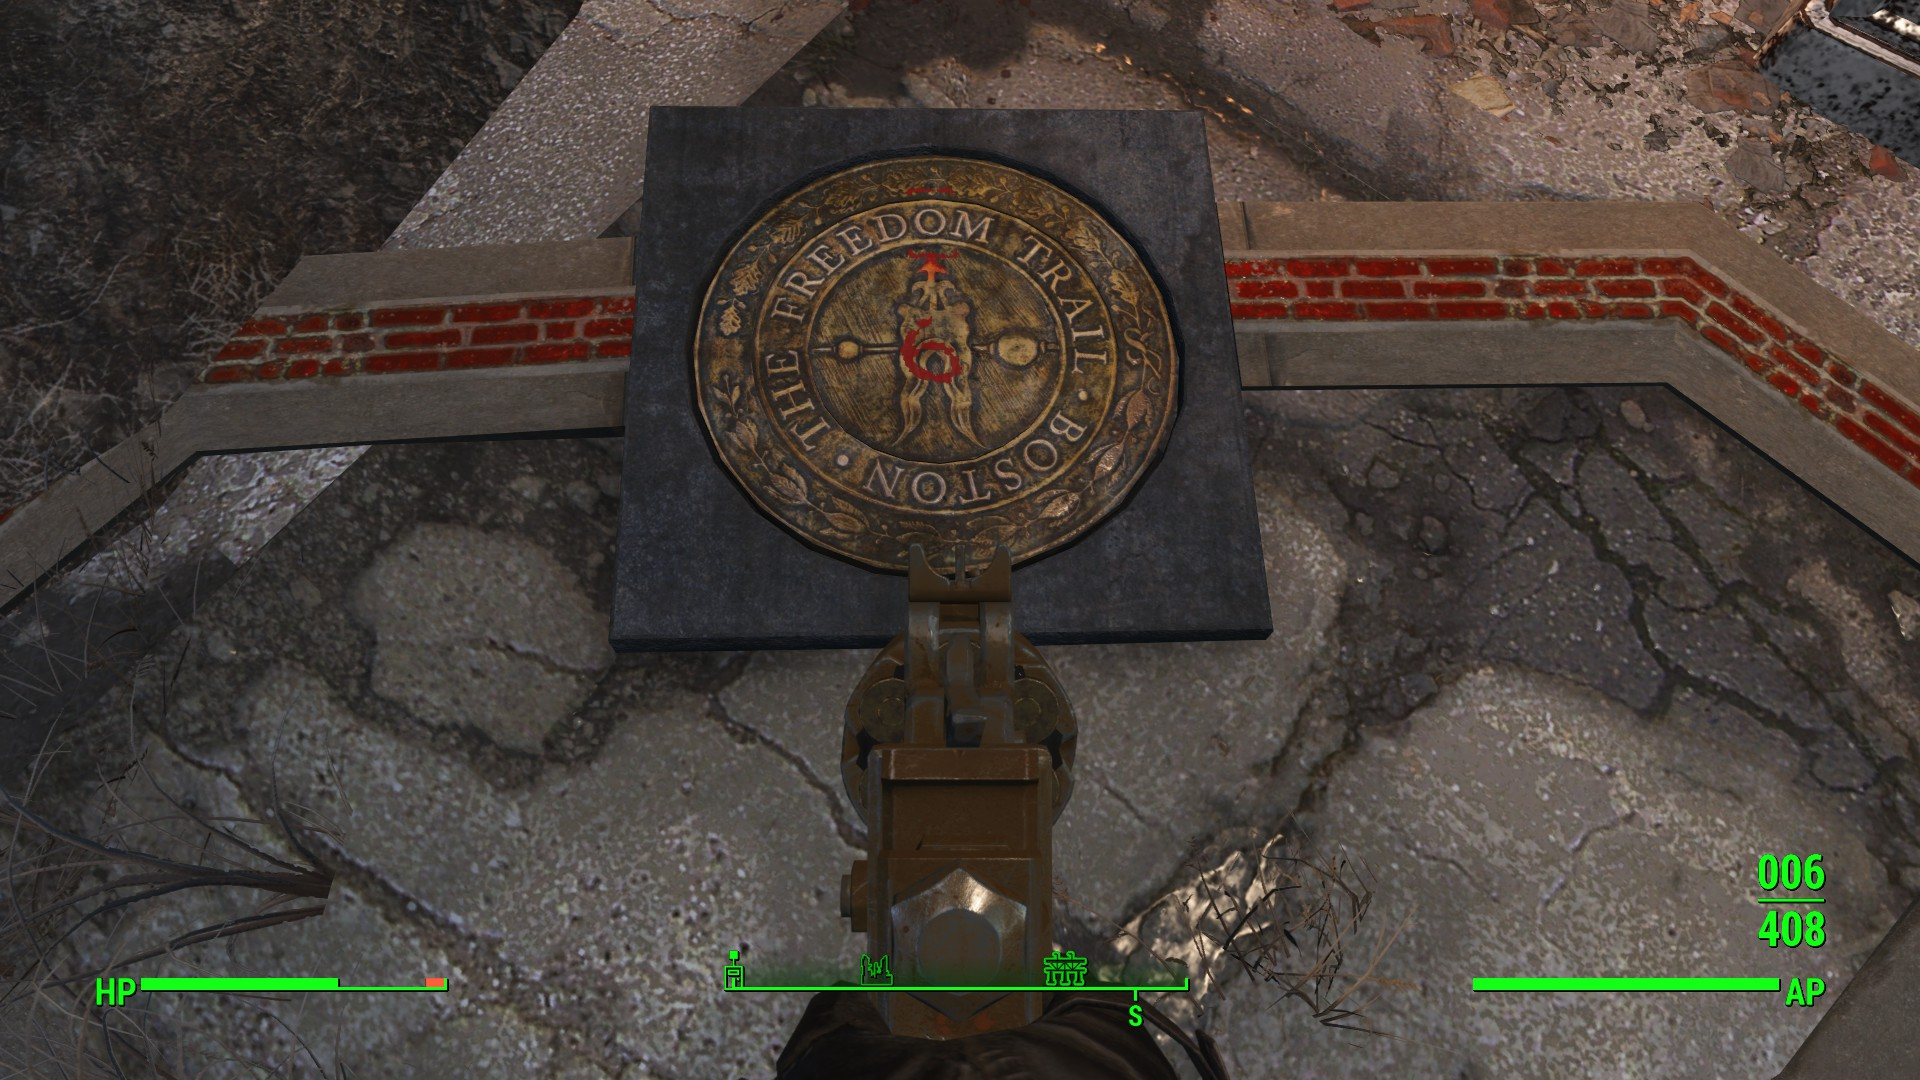 Fallout 4 Freedom Trail